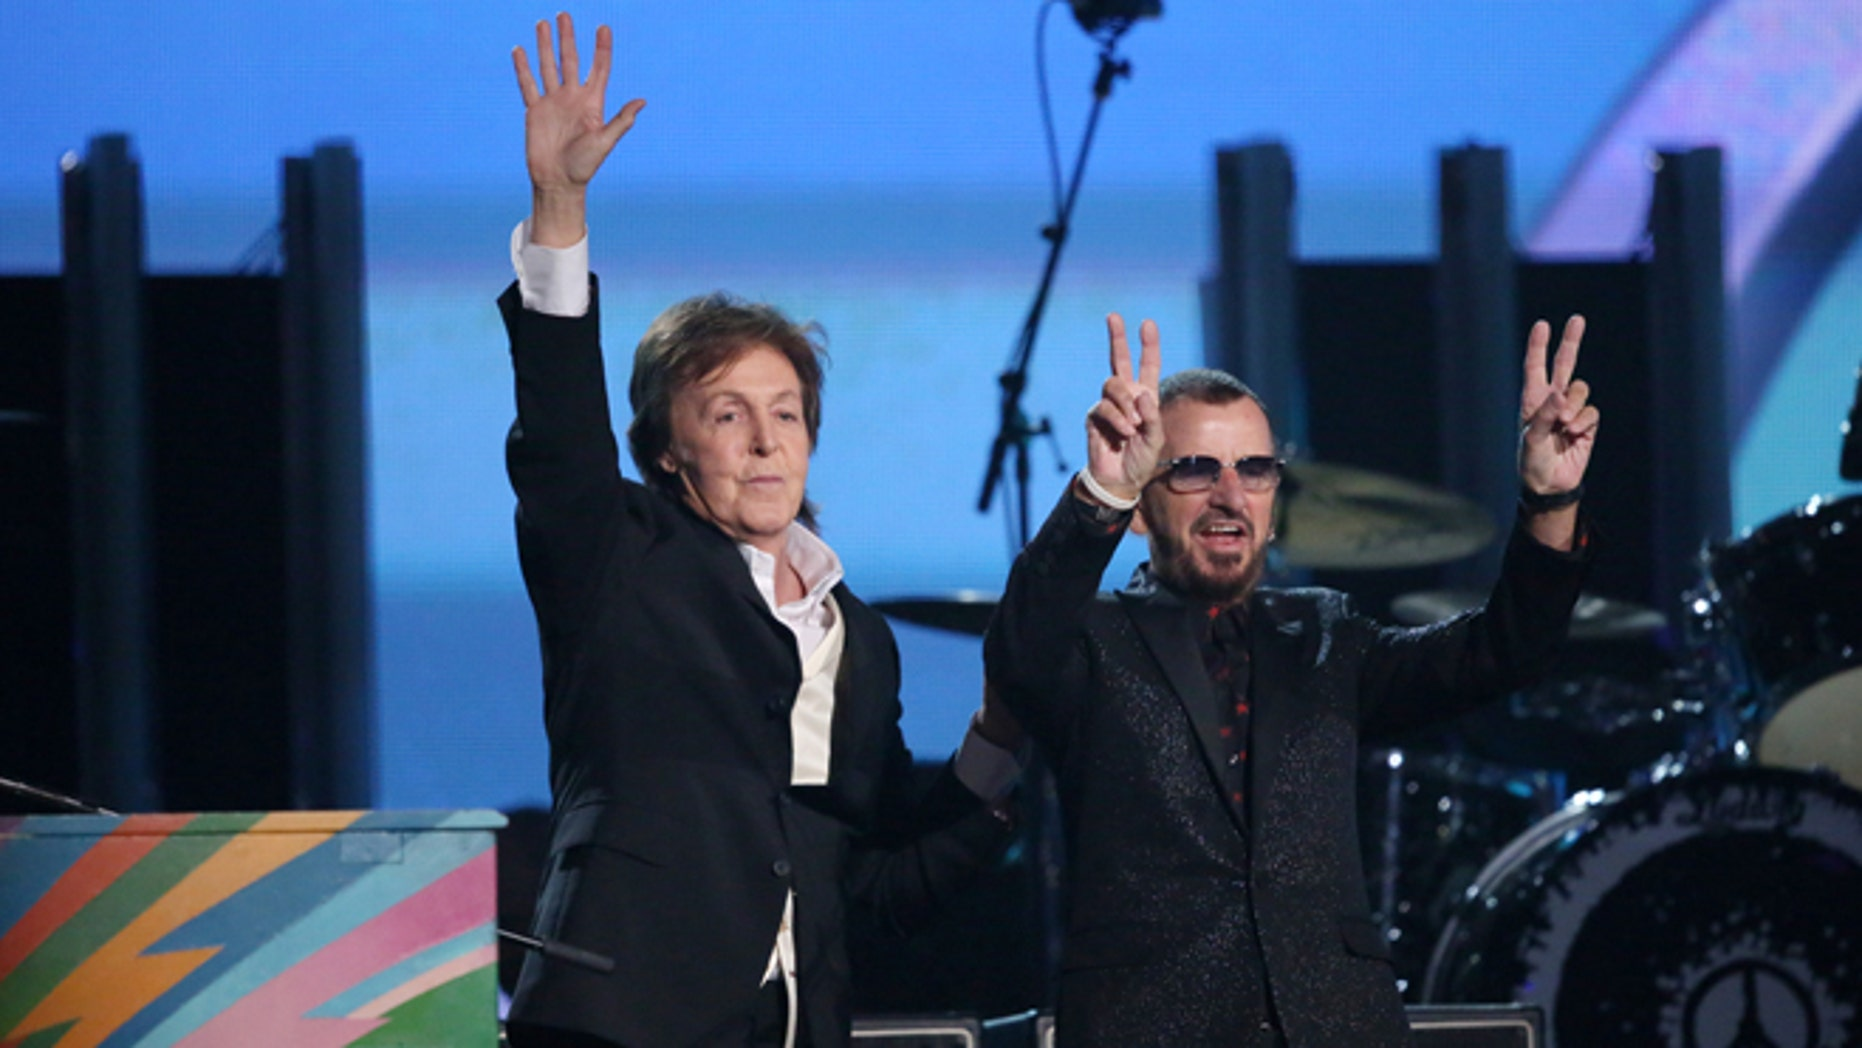 Paul McCartney, left, and Ringo Starr perform on stage at the 56th annual Grammy Awards at Staples Center on Sunday, Jan. 26, 2014, in Los Angeles. (Photo by Matt Sayles/Invision/AP)